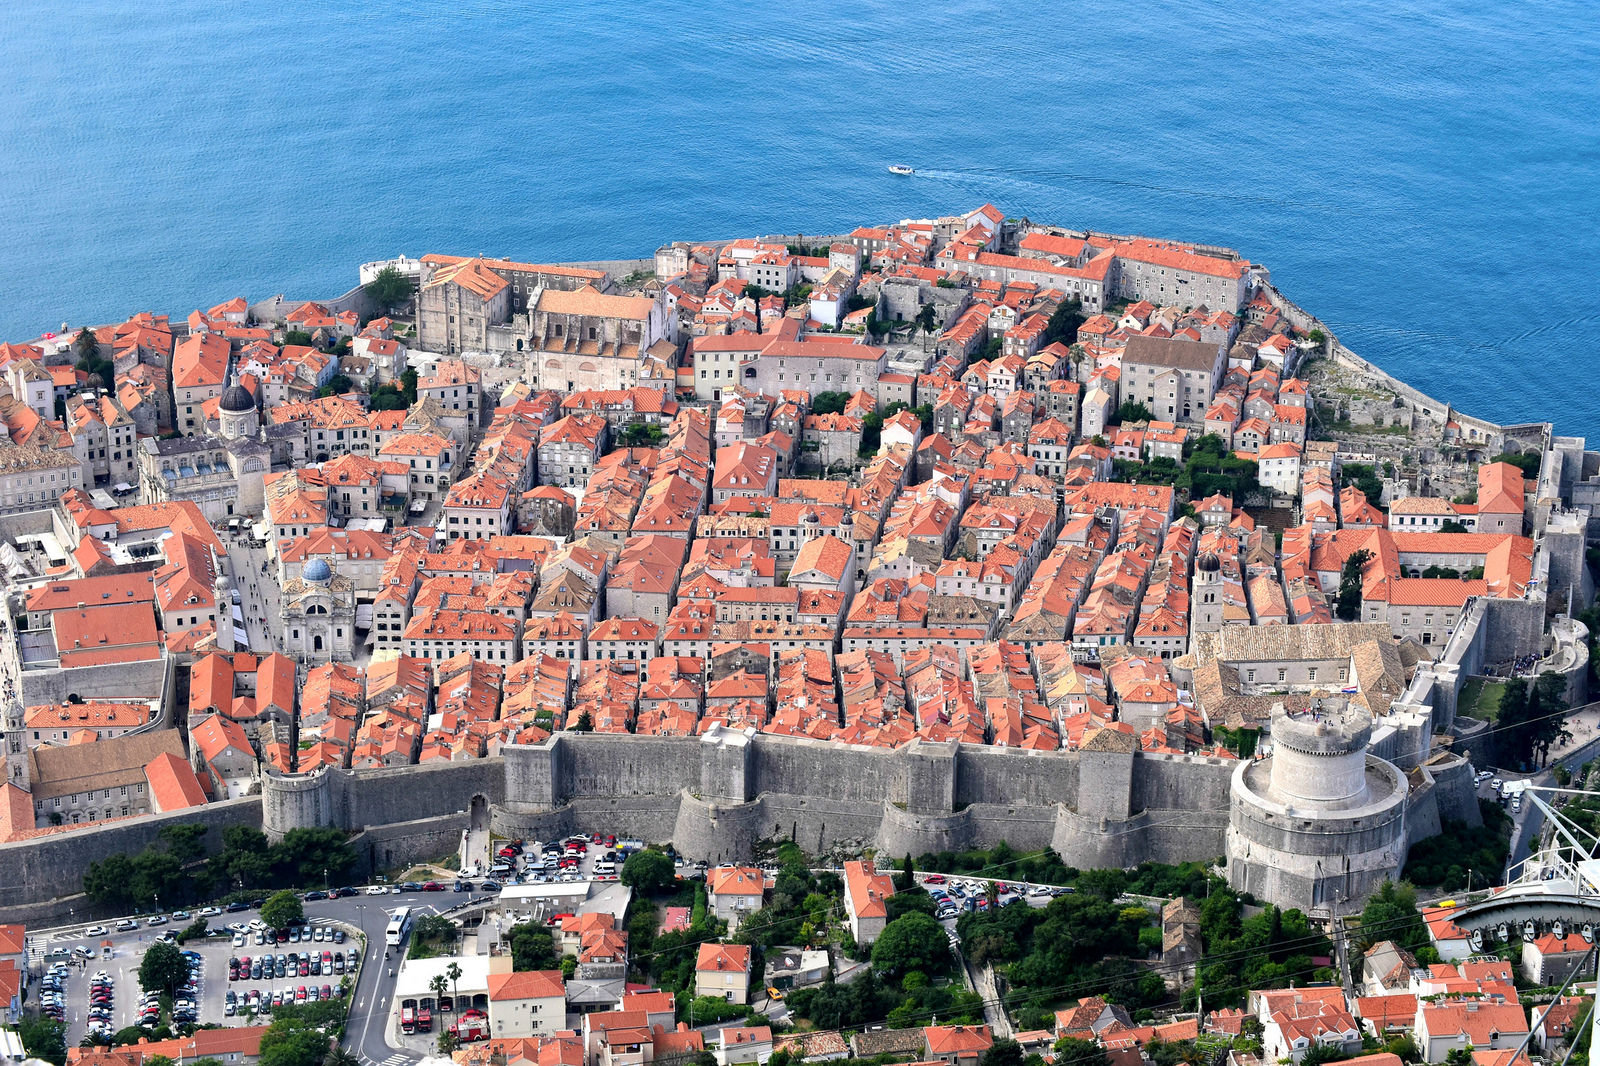 Old Town Dubrovnik view from the mountains